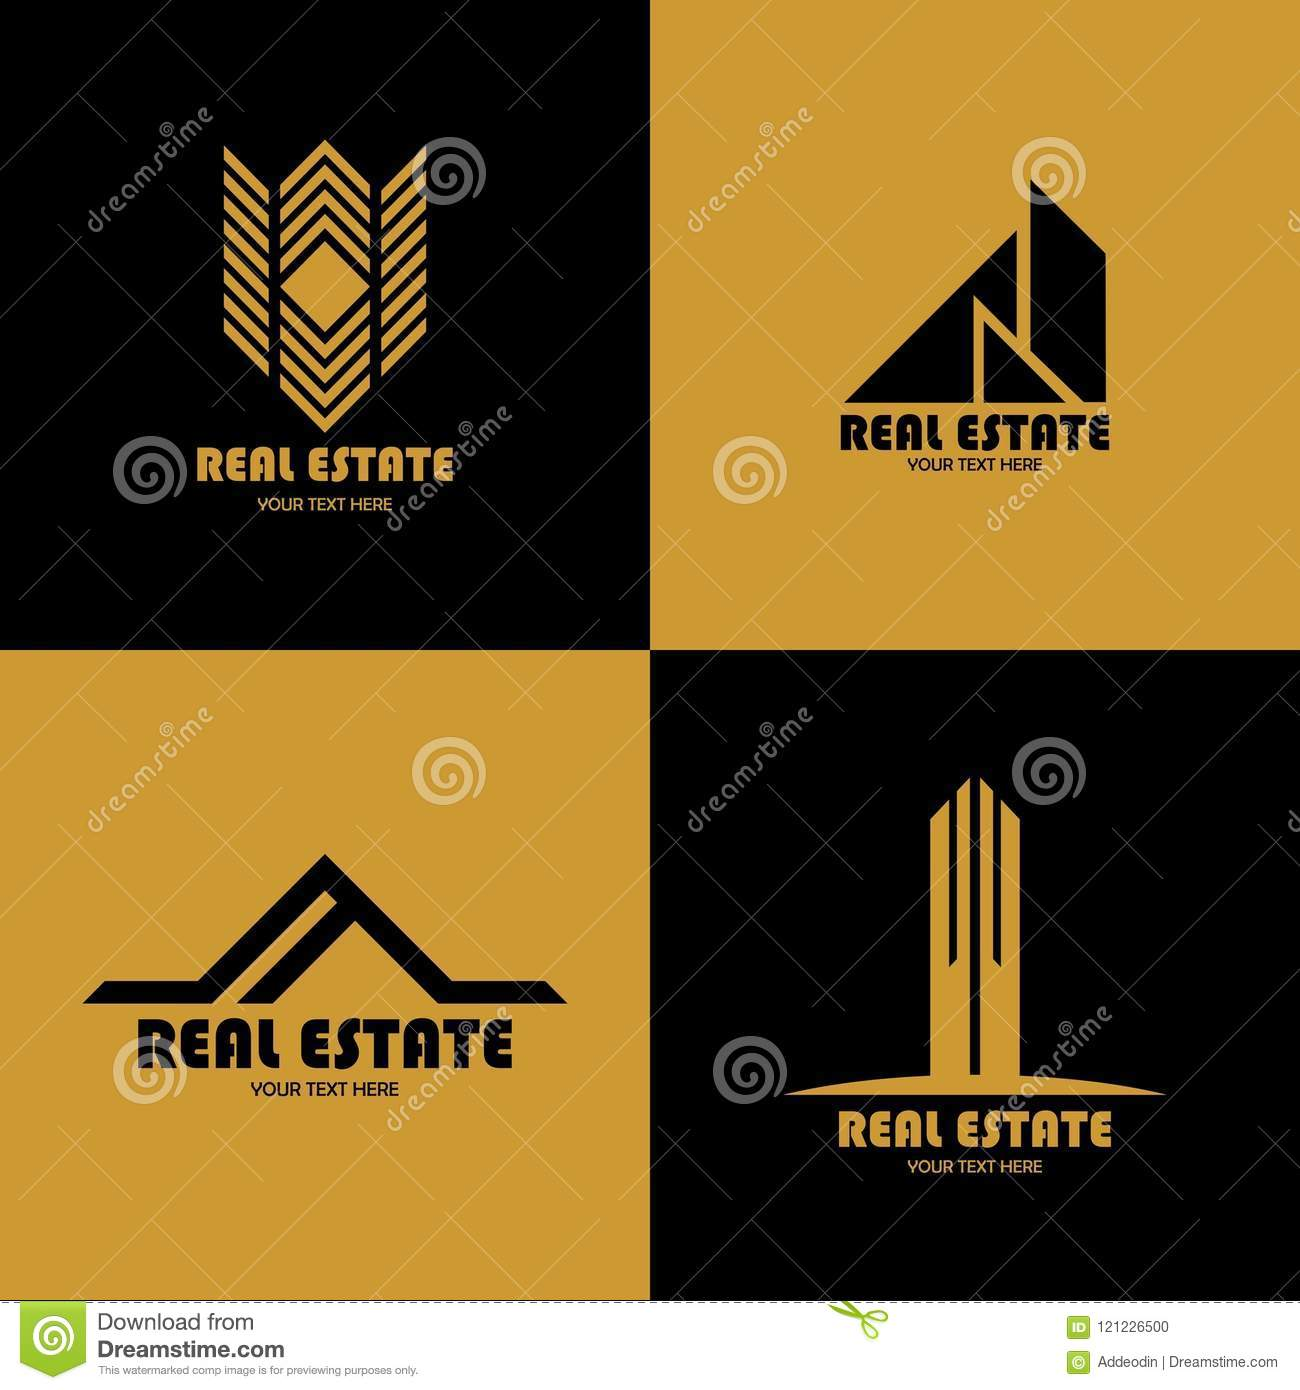 Vektor av den Real Estate logoen, elegant design